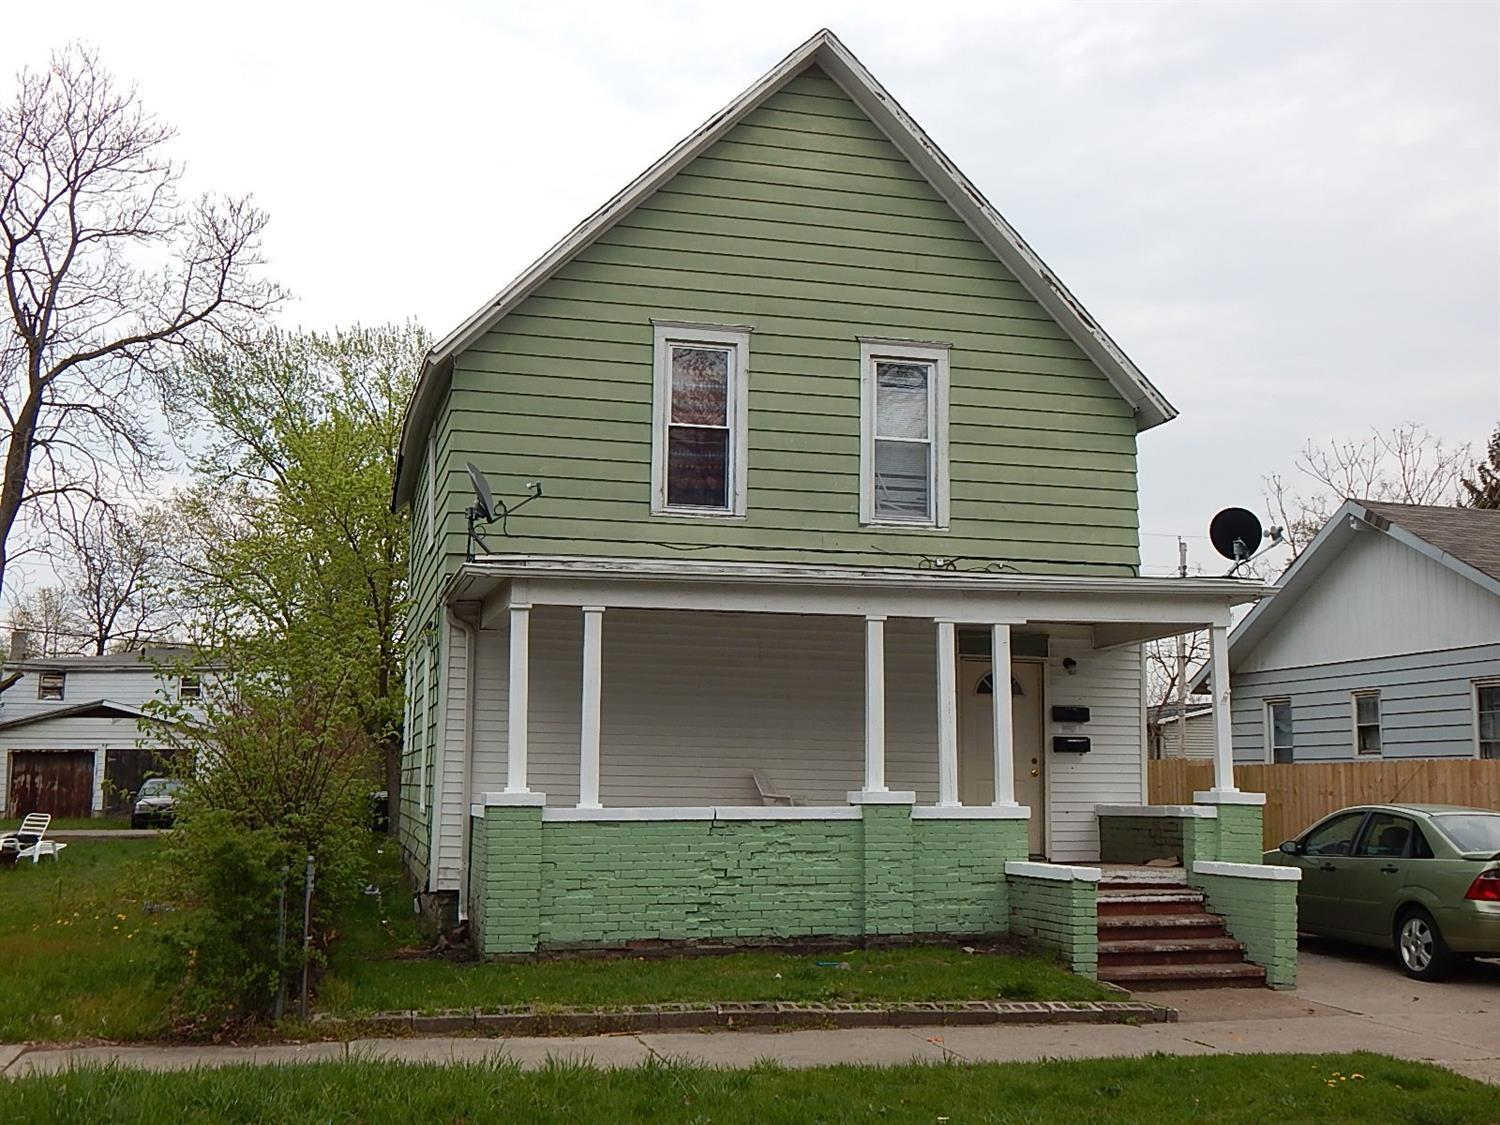 Multi-family Home For Sale in Michigan City for $68,000